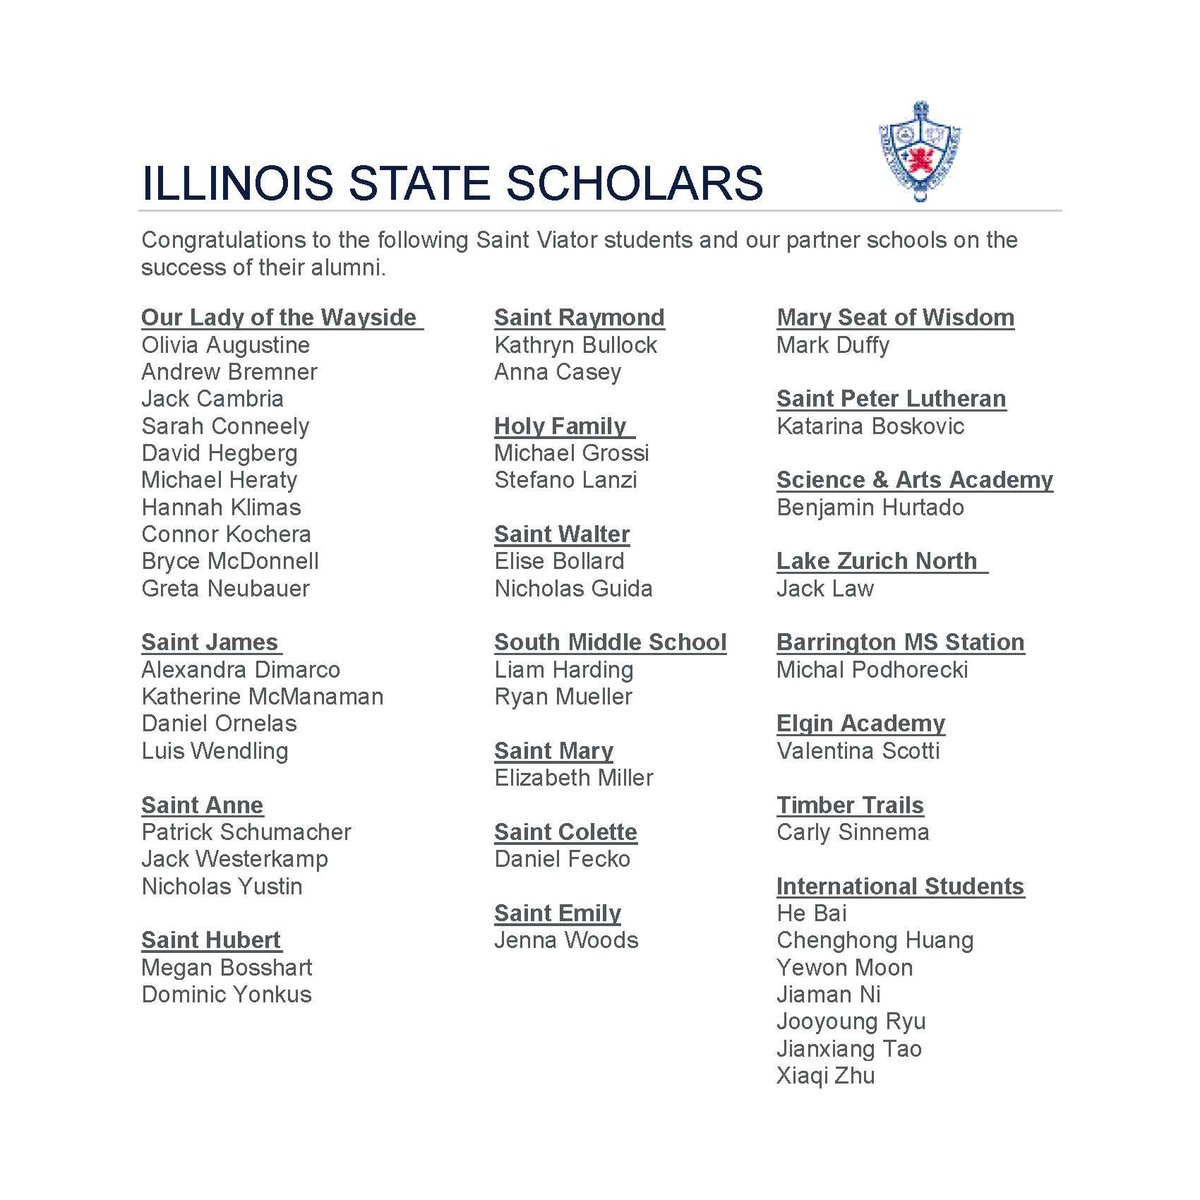 Each year, Illinois State Scholars represent the top 10 percent of high school seniors from 765 high schools across the state. SJS is proud to announce that 4 alumni were named Illinois State Scholars from @SaintViatorHS . Congratulations, Bulldogs! #OnceABulldogAlwaysABulldog